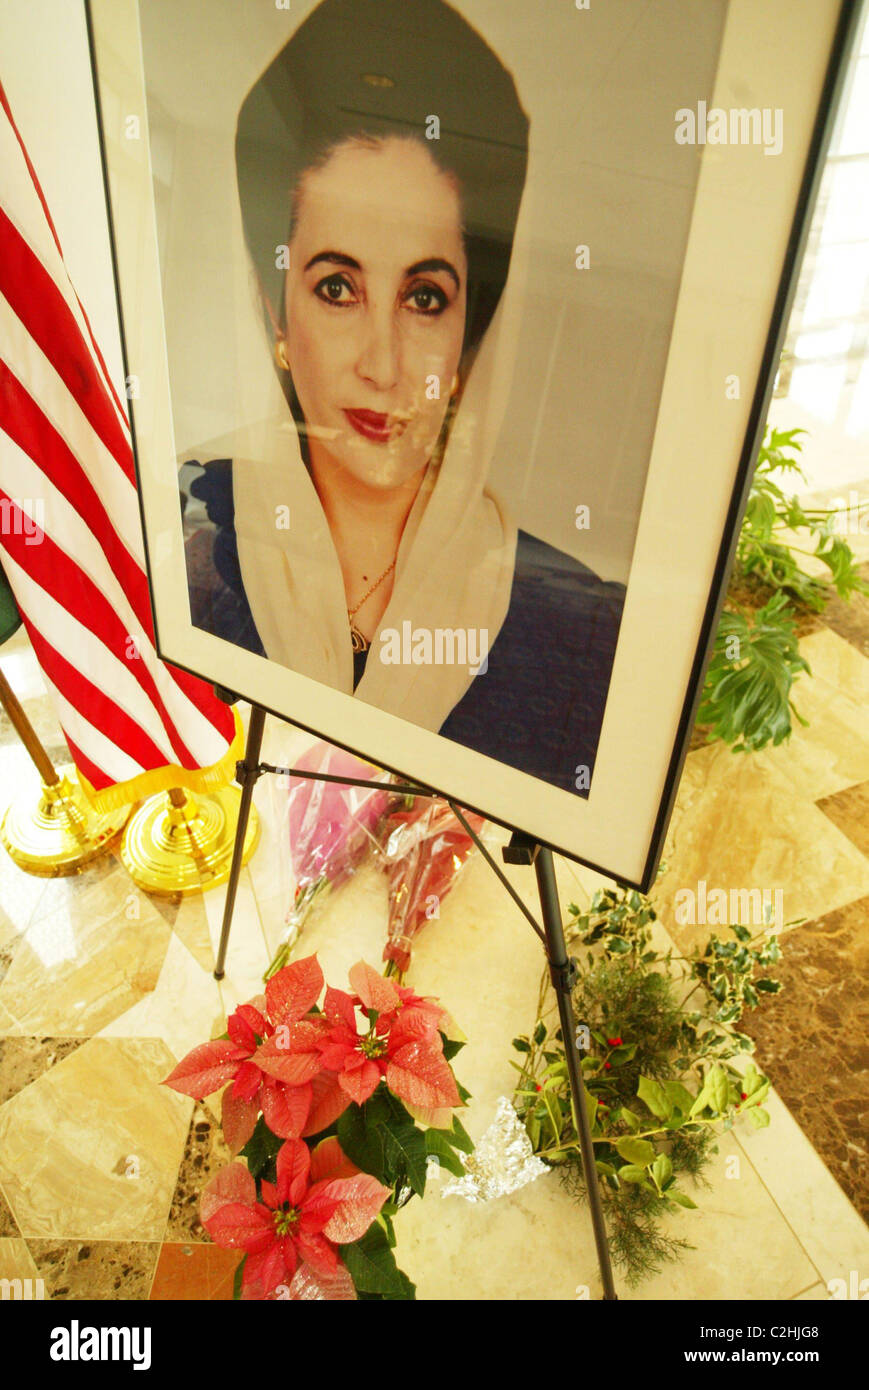 Tribute book signing to Benazir Bhutto, Prime Minister of Pakistan who was assassinated on December 27, 2007, after Stock Foto